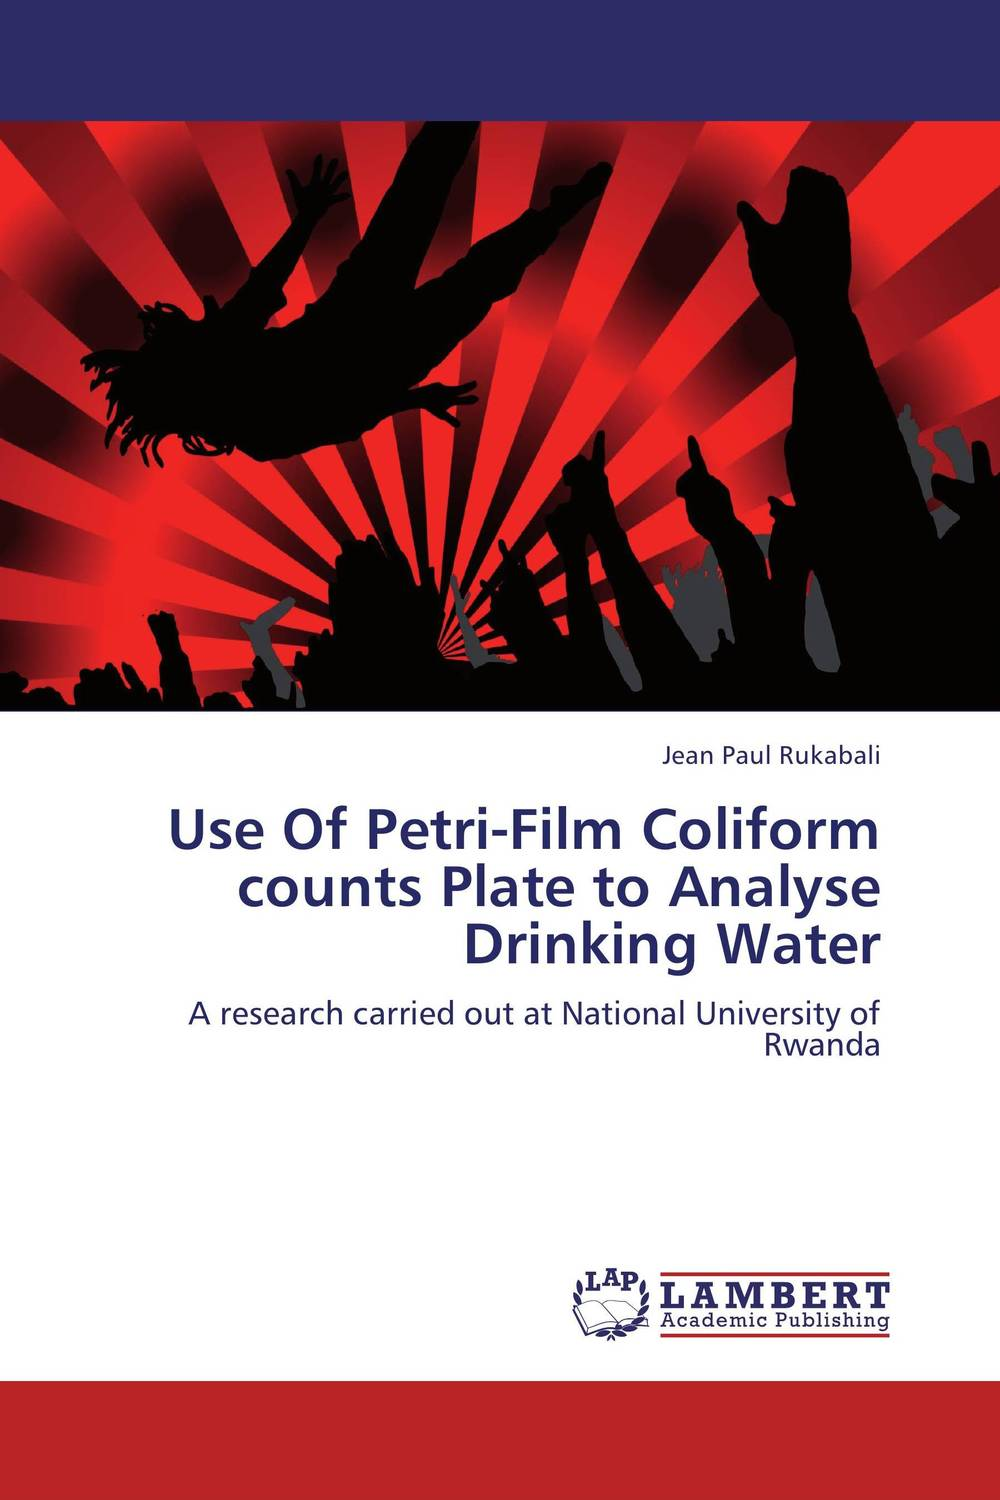 Use Of Petri-Film Coliform counts Plate to Analyse Drinking Water peace education at the national university of rwanda